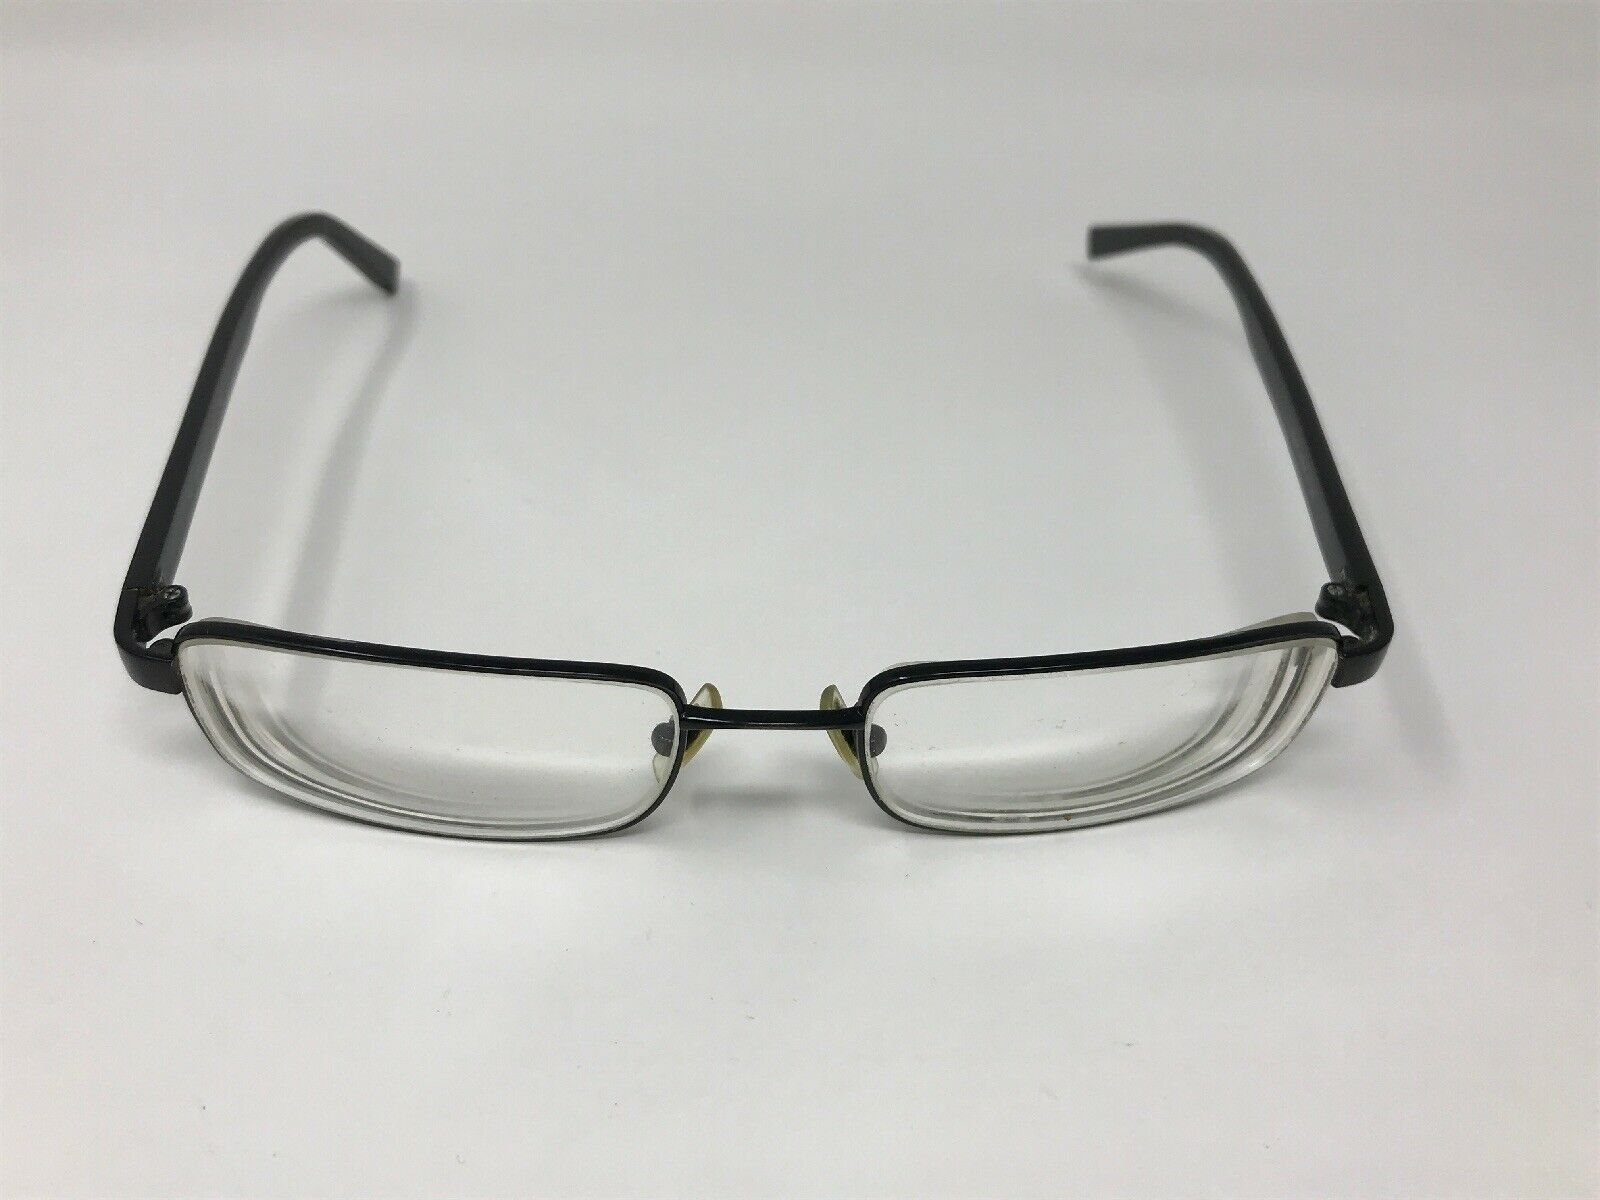 CALVIN KLEIN Eyeglasses Frame Japan Mod.582 55-19-140 Black/Dark Green SN82